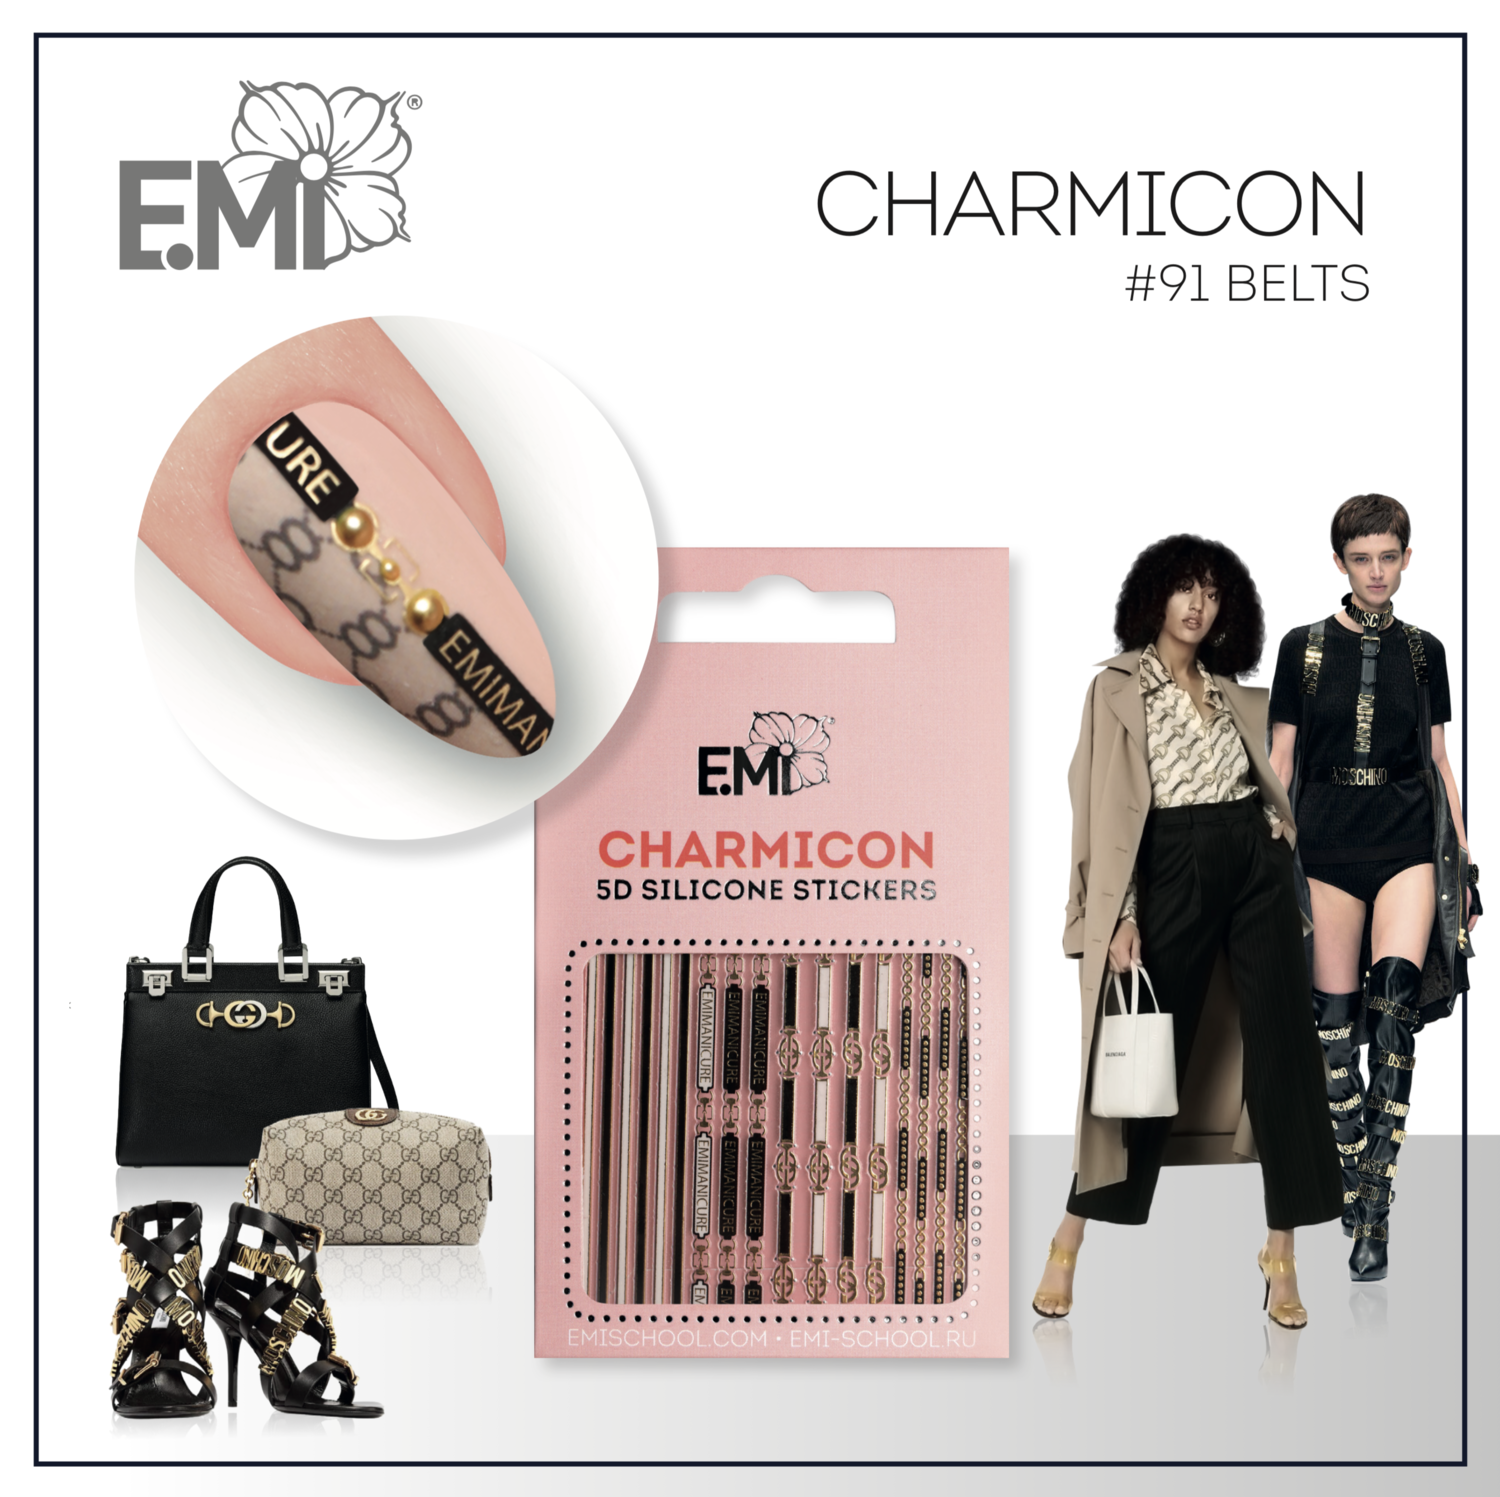 Charmicon Silicone Stickers #91 Belts